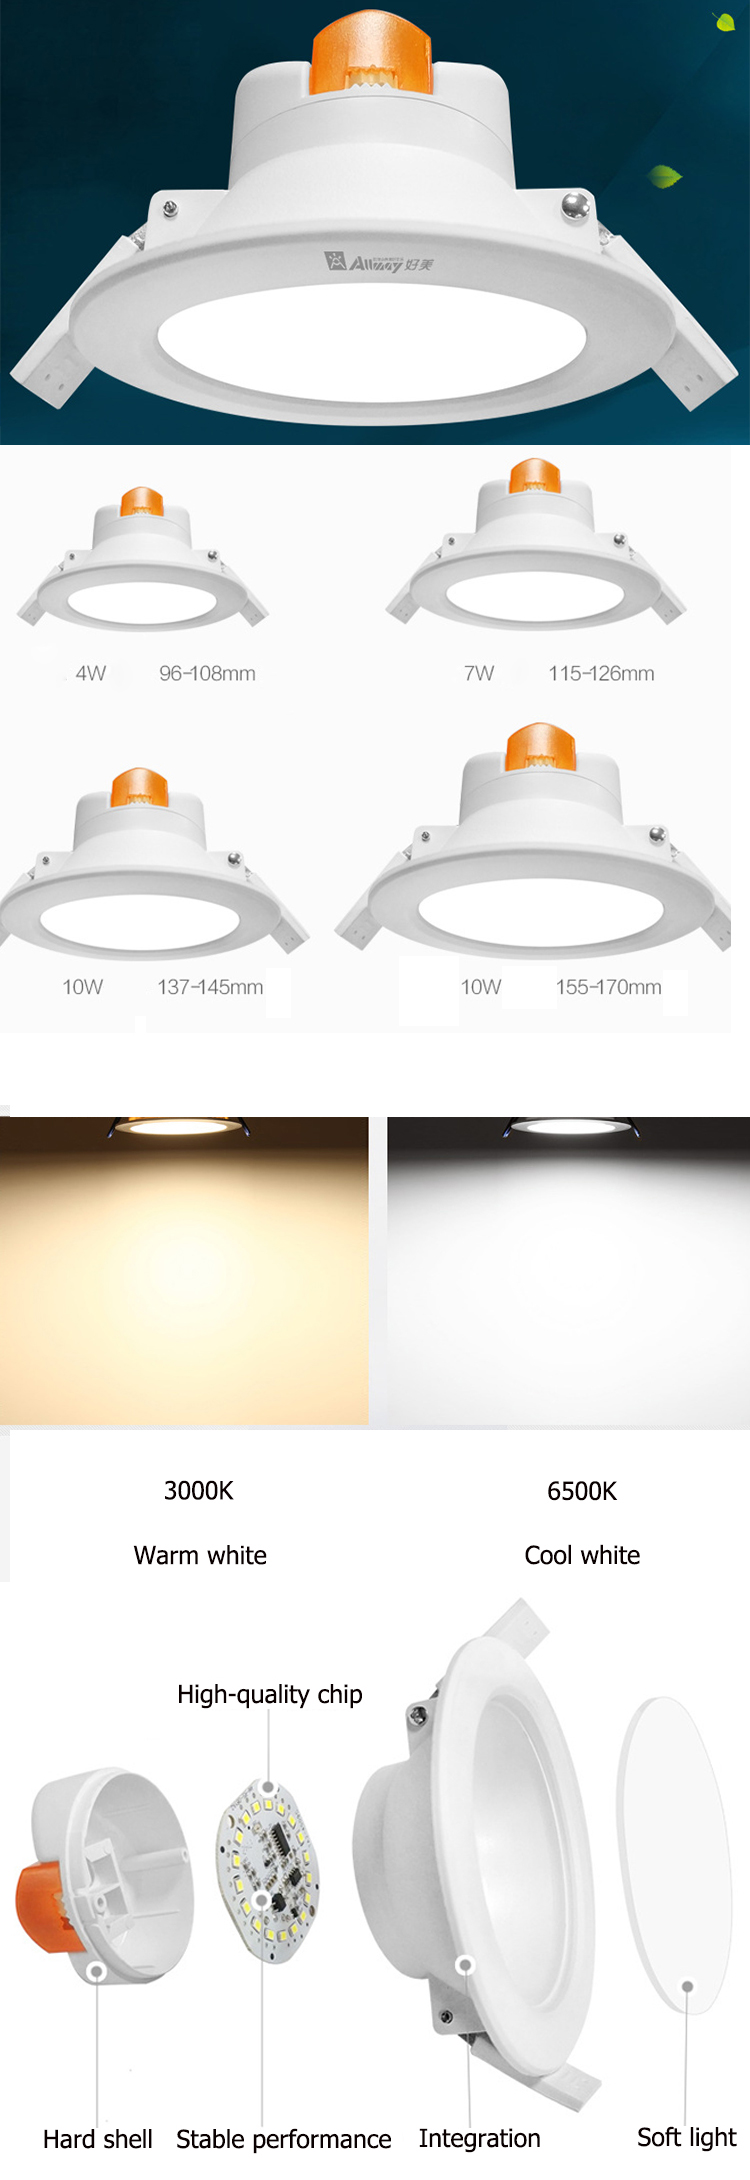 China Alibaba Indoor Lamp 7W Motion Sensor Recessed Down Light Led Surface Mounted Downlight